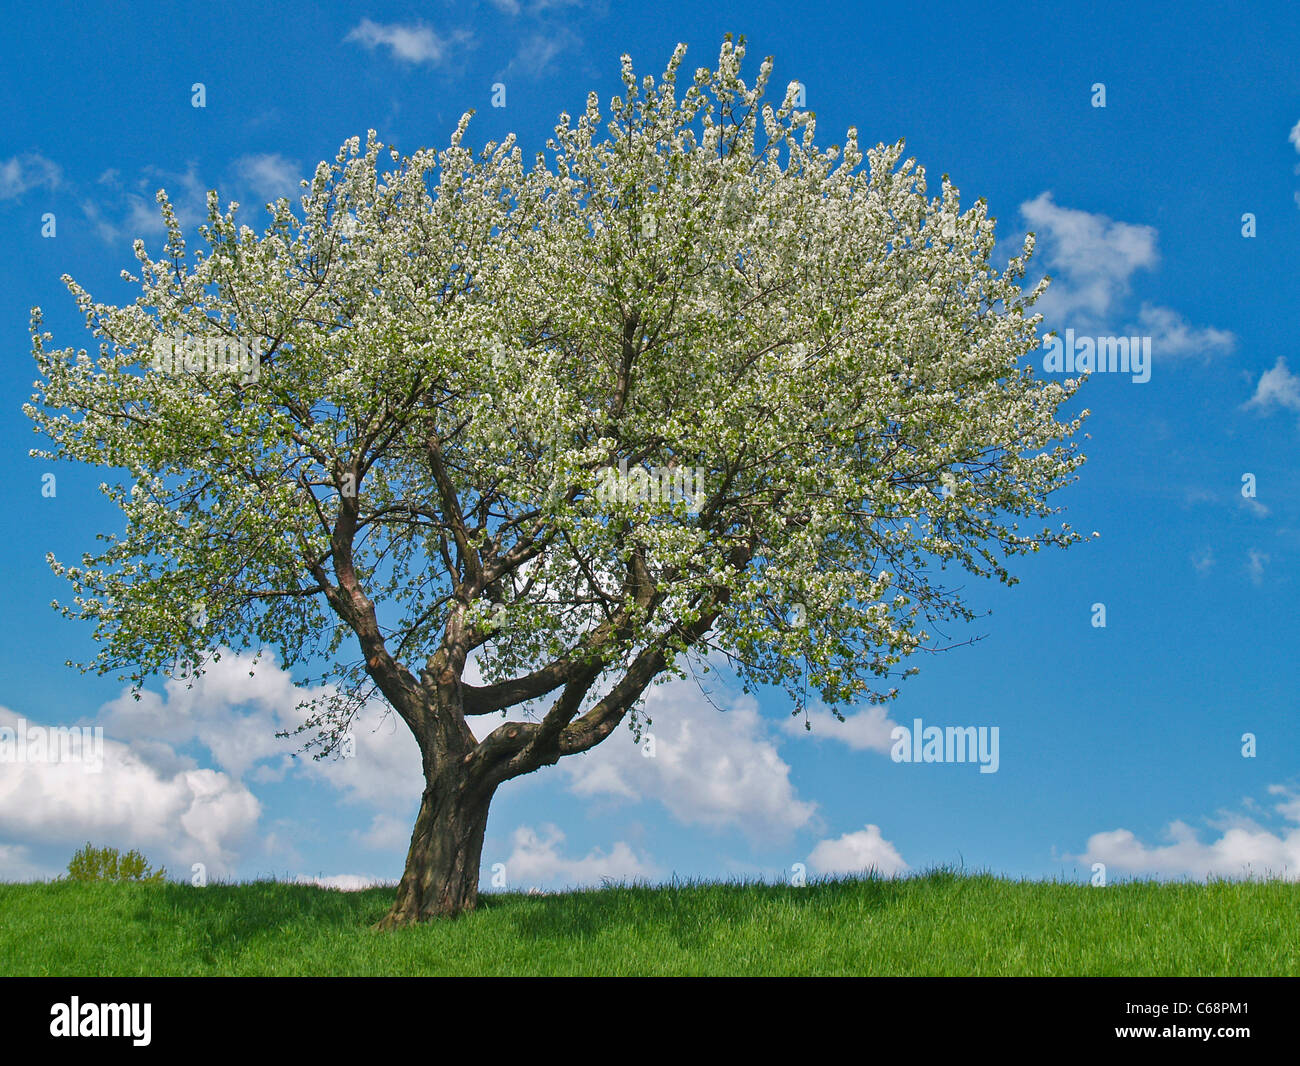 cherry tree stockfotos cherry tree bilder alamy. Black Bedroom Furniture Sets. Home Design Ideas